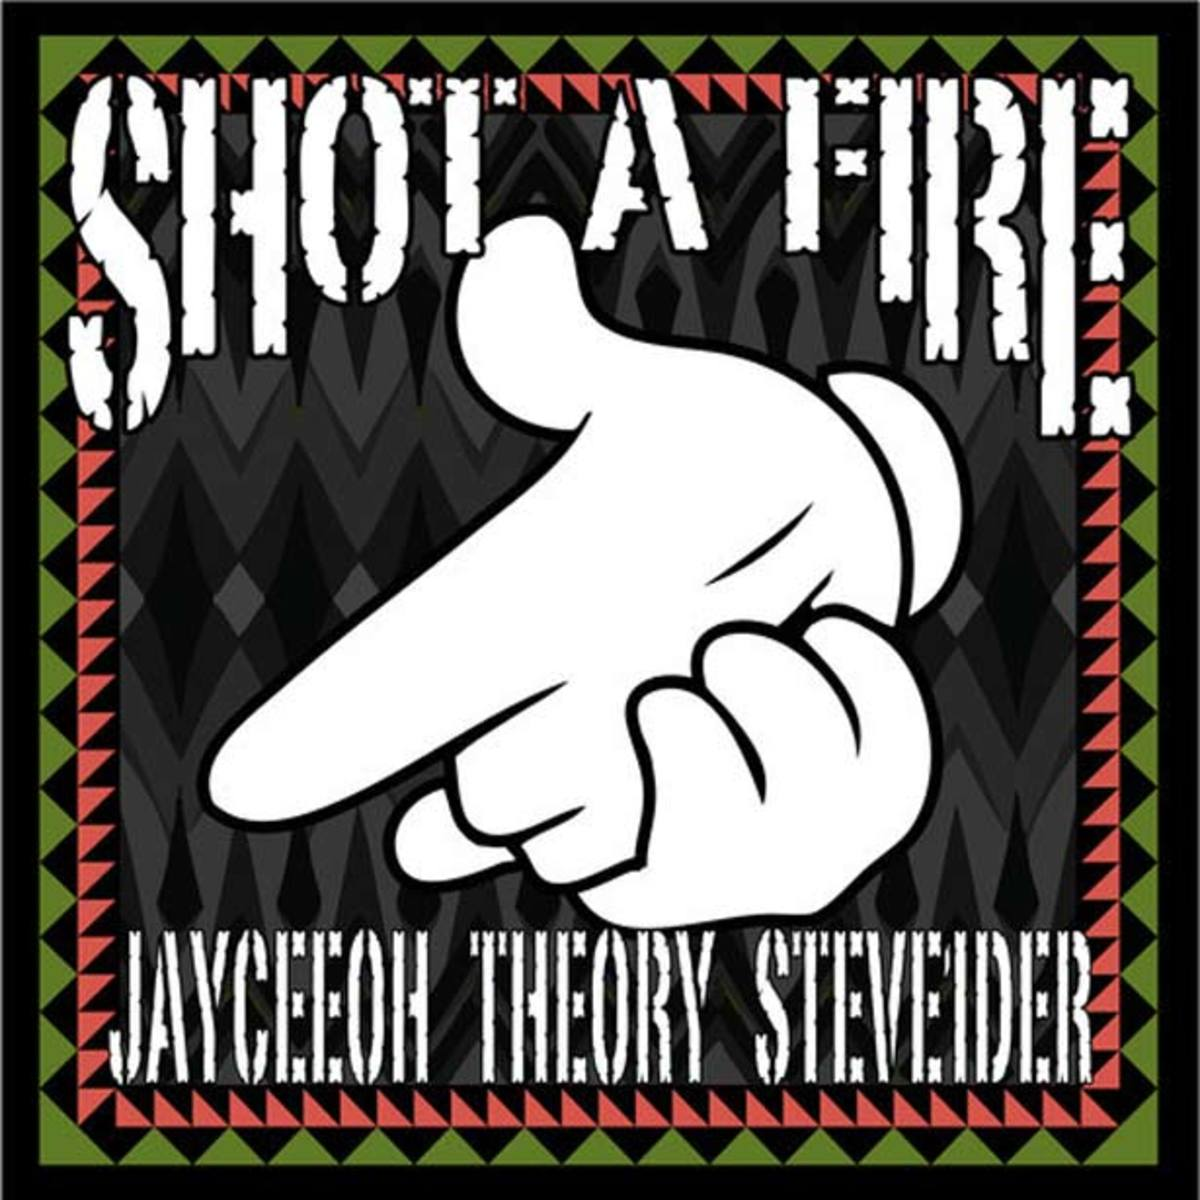 "Premiere: JayCeeOh, Deejay Theory & Steve1der Team Up On ""Shot A Fire"" (Original Mix) - EDM Download"